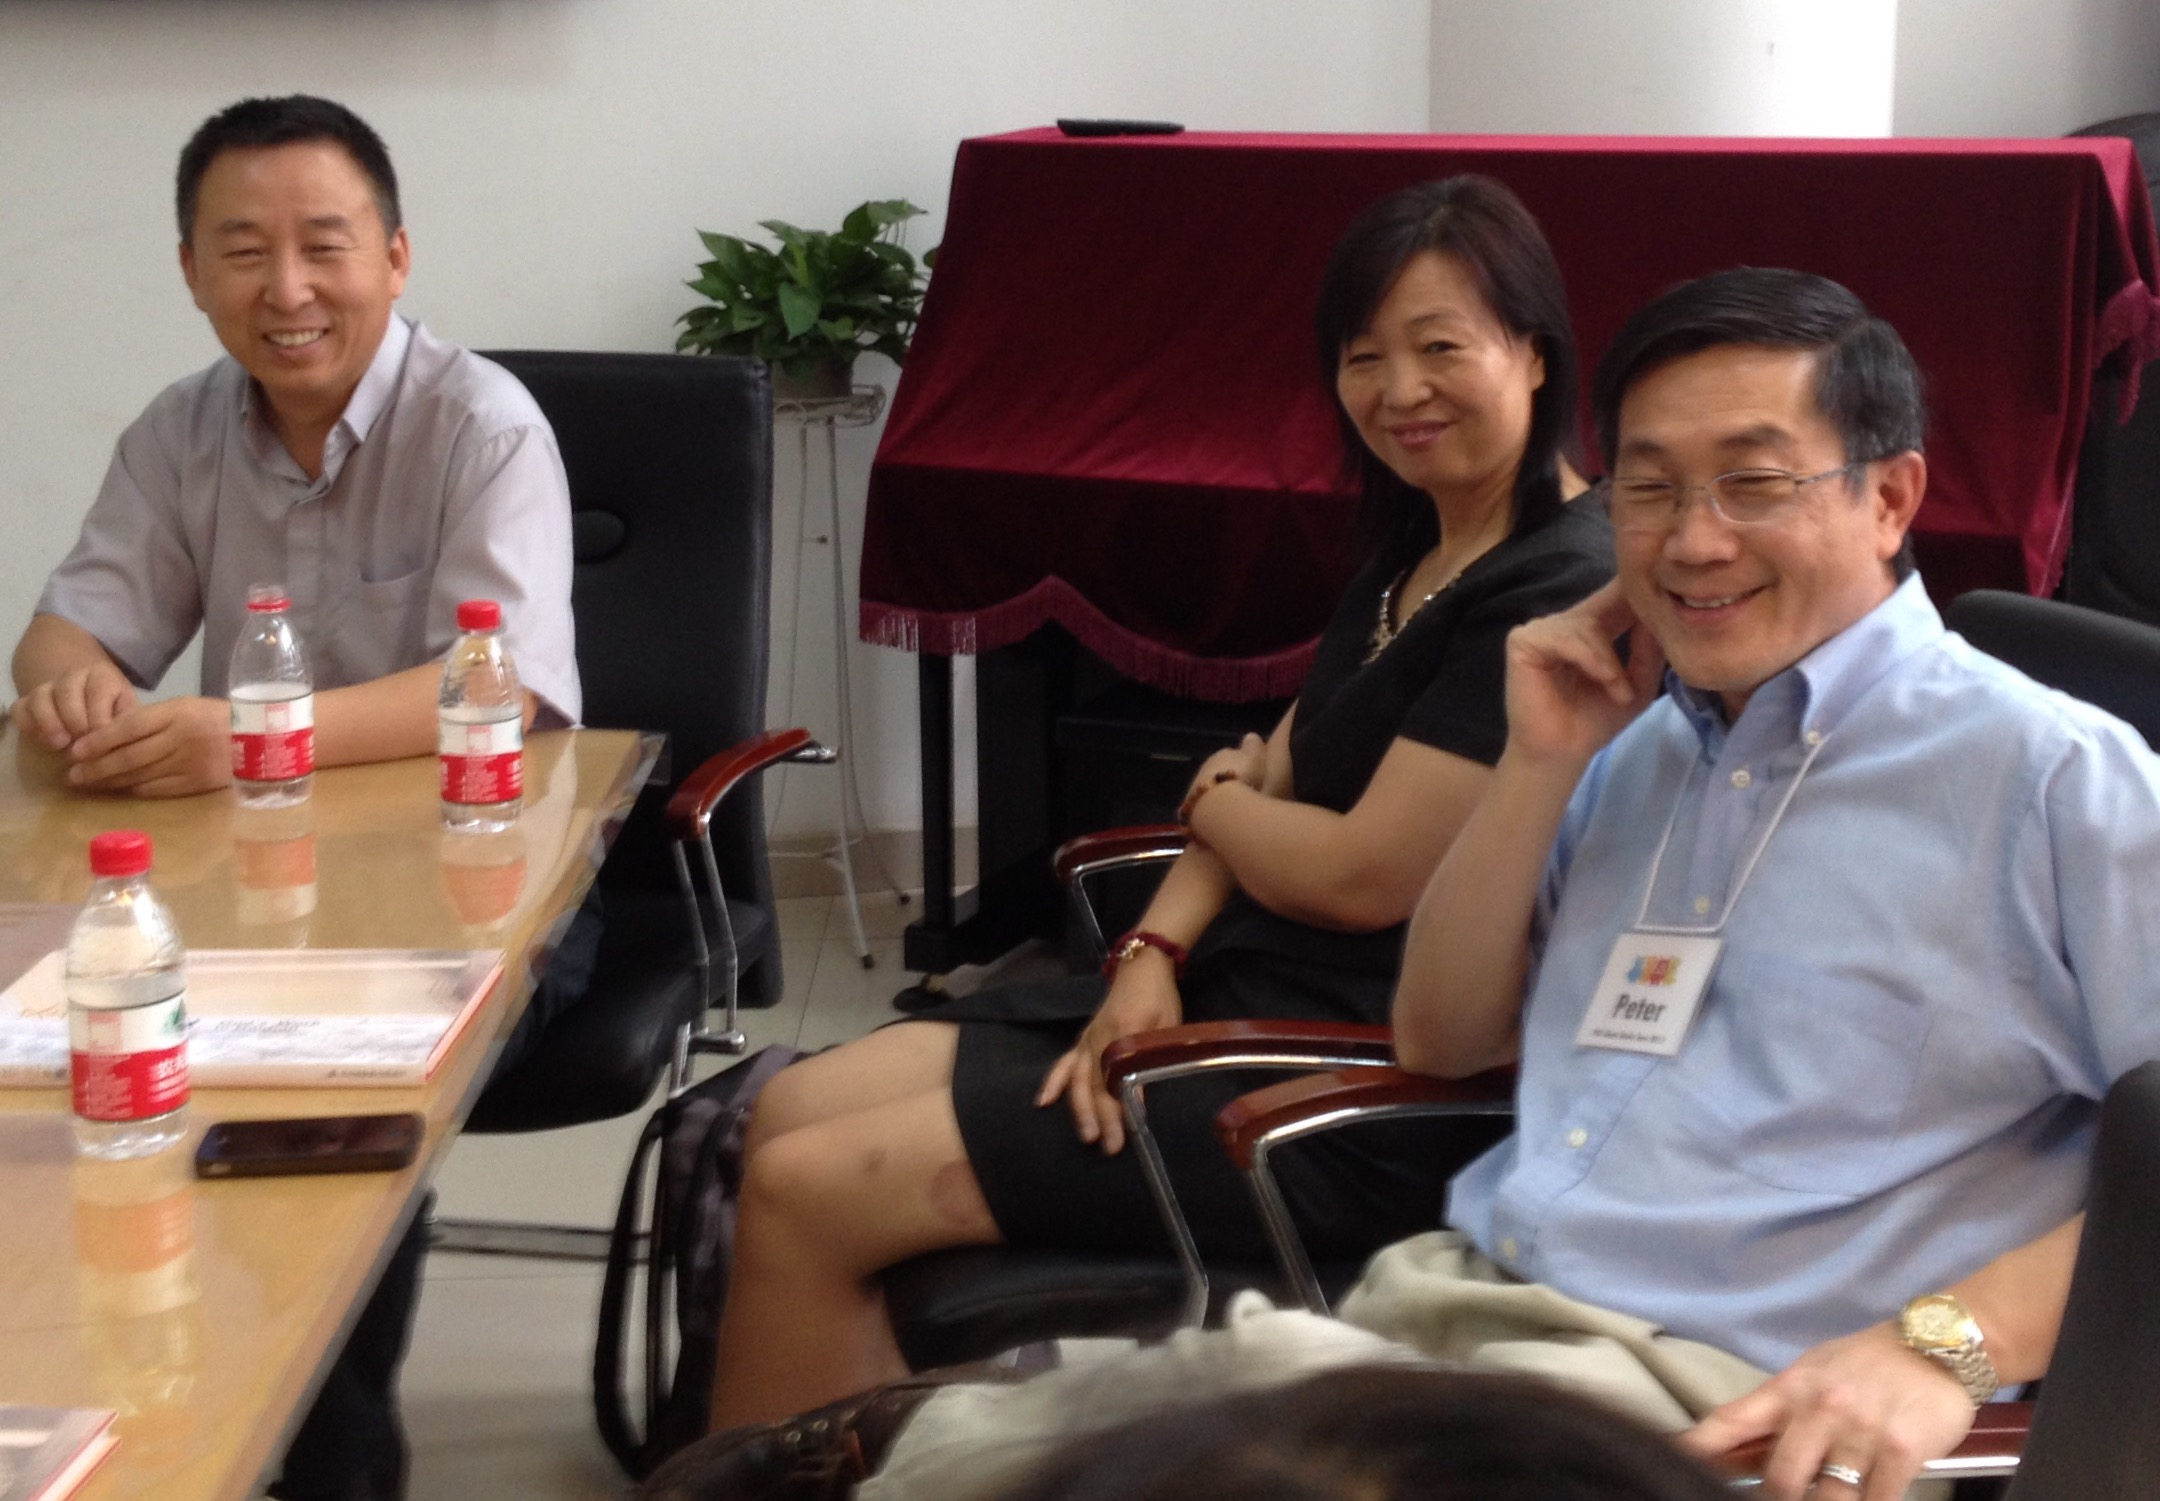 Pastor Wu (left) and his wife, Pastor Ruth, greet Outreach's Dr. Peter Lim